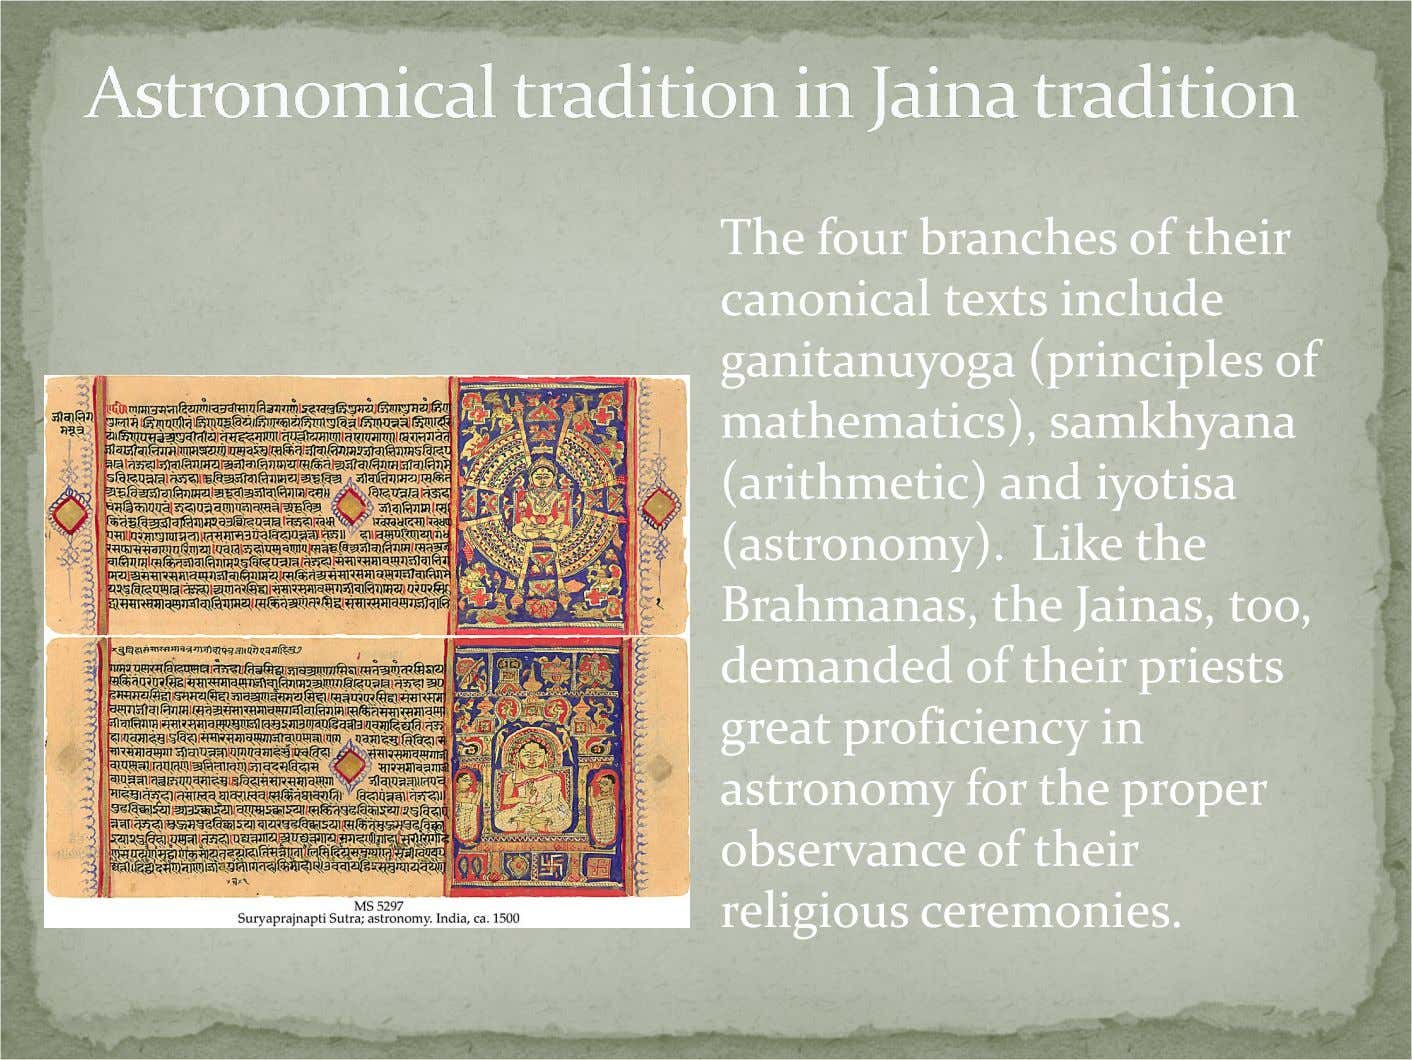 The four branches of their canonical texts include ganitanuyoga (principles of mathematics), samkhyana (arithmetic)